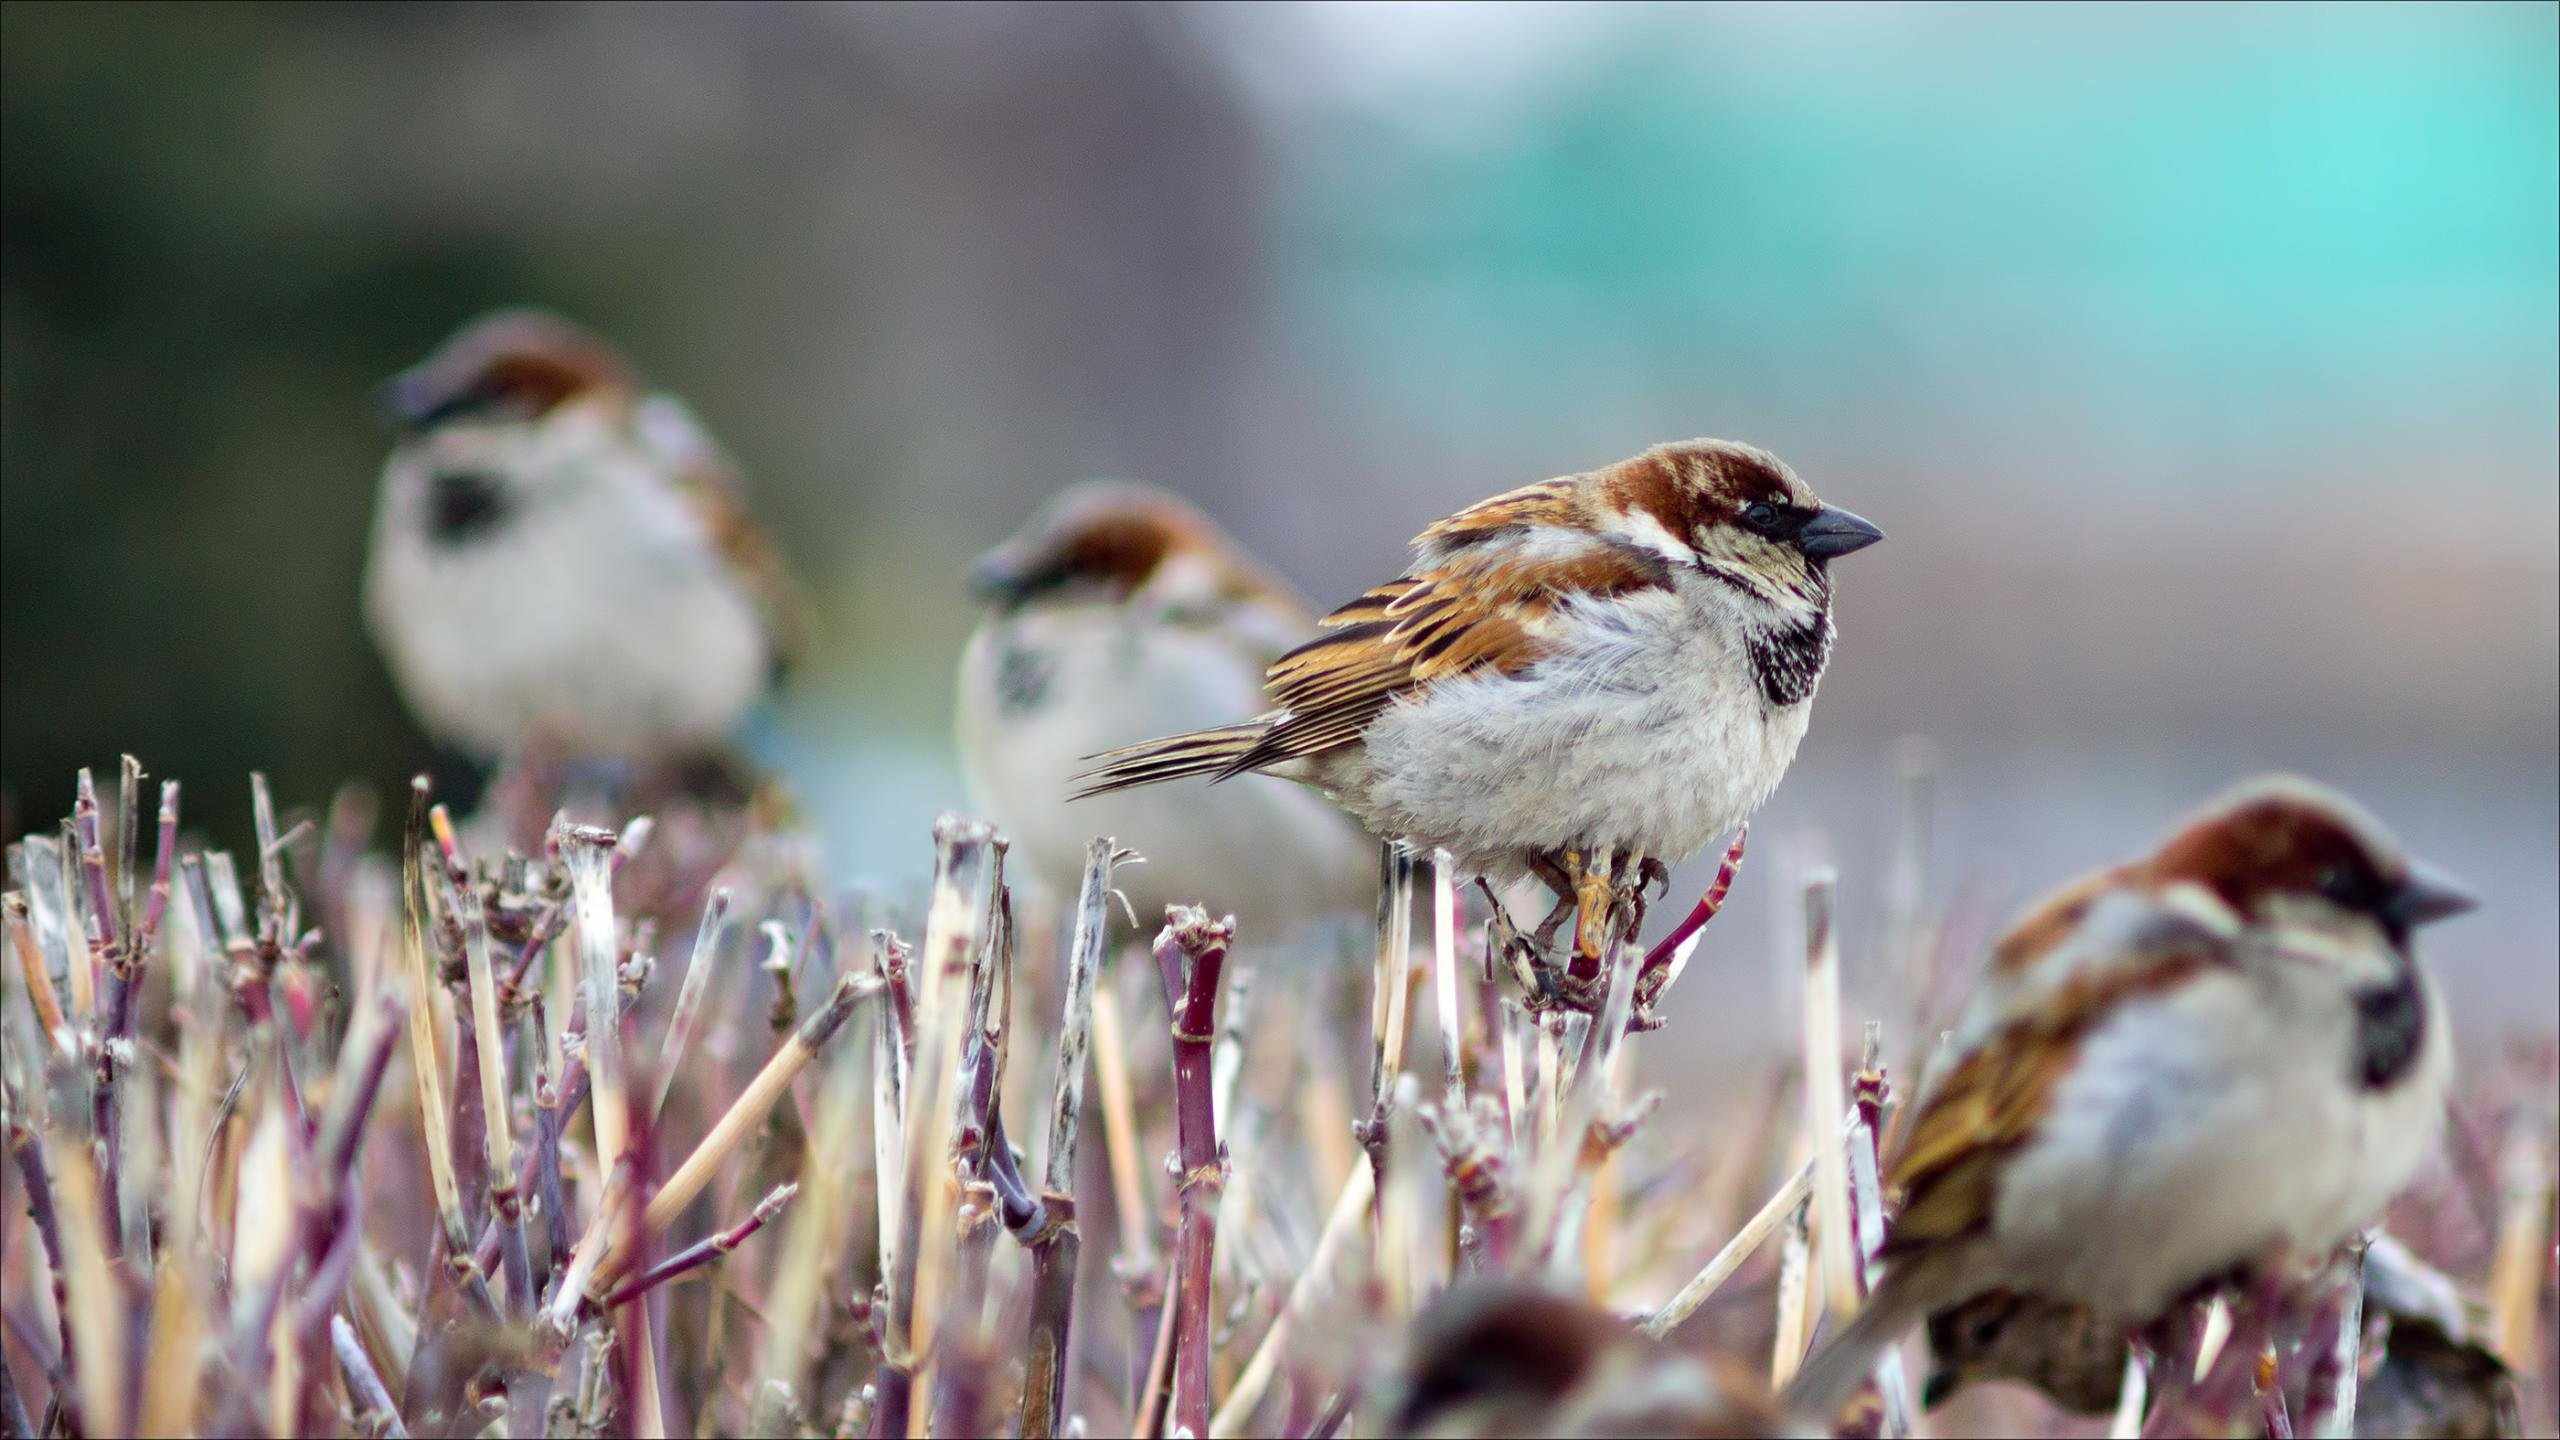 Download hd 2560x1440 Sparrow PC wallpaper ID:110692 for free